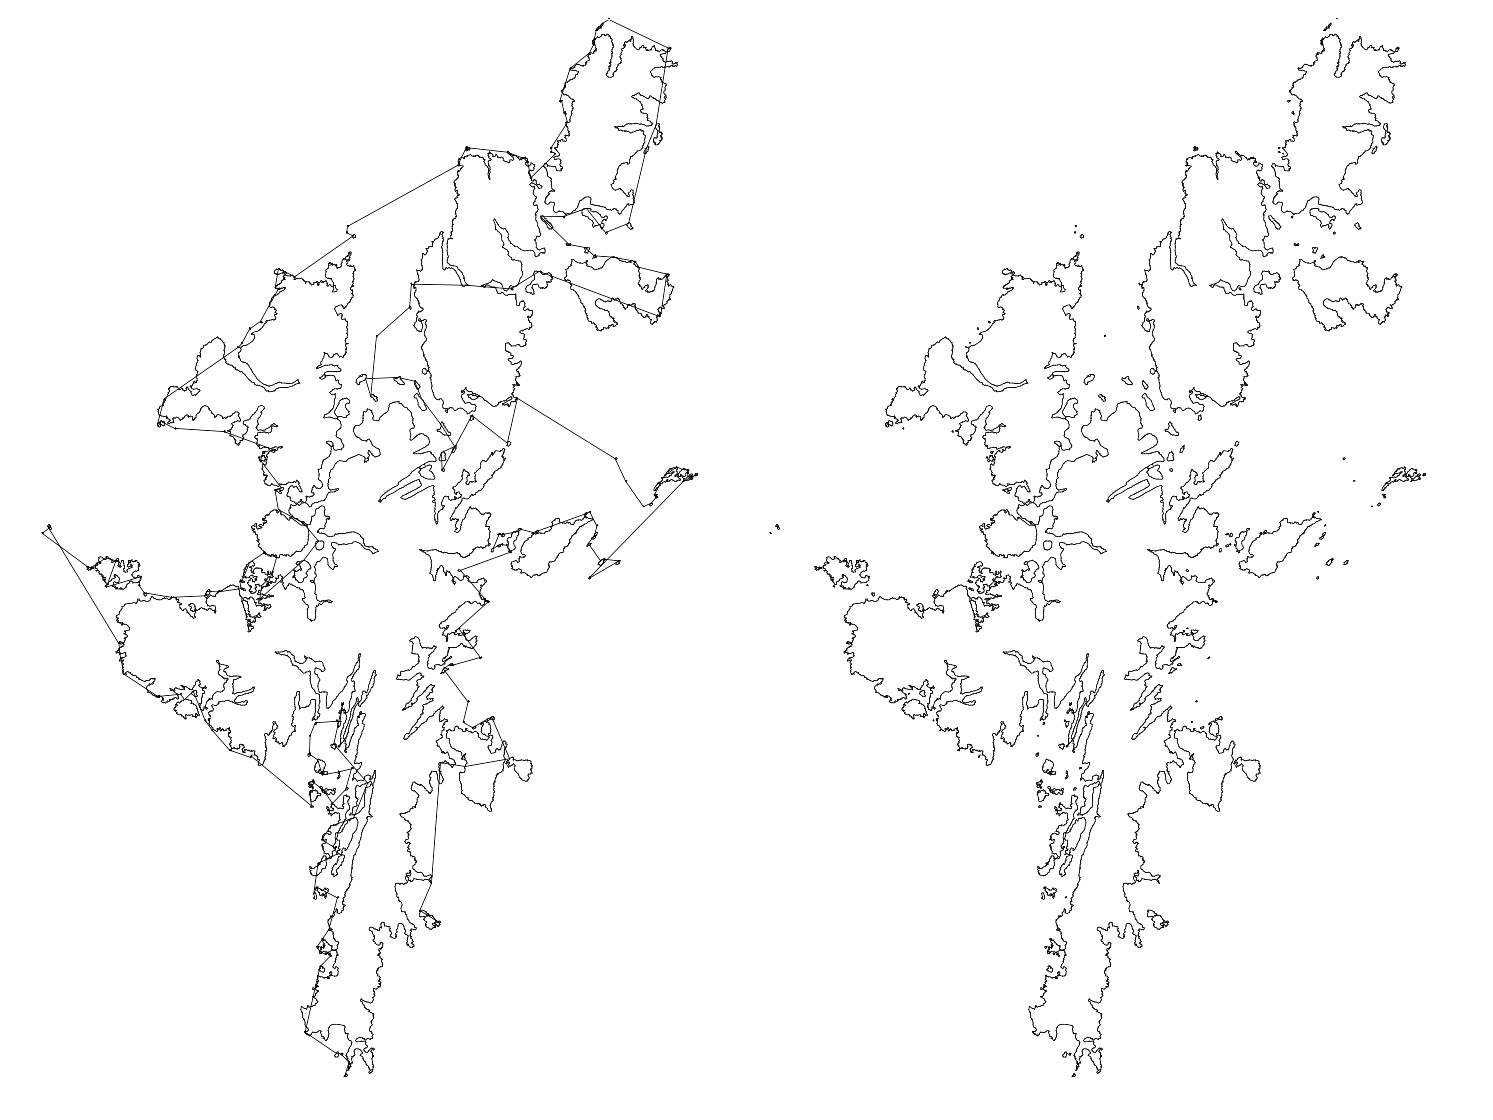 Shetland Islands with lines connecting each one to another